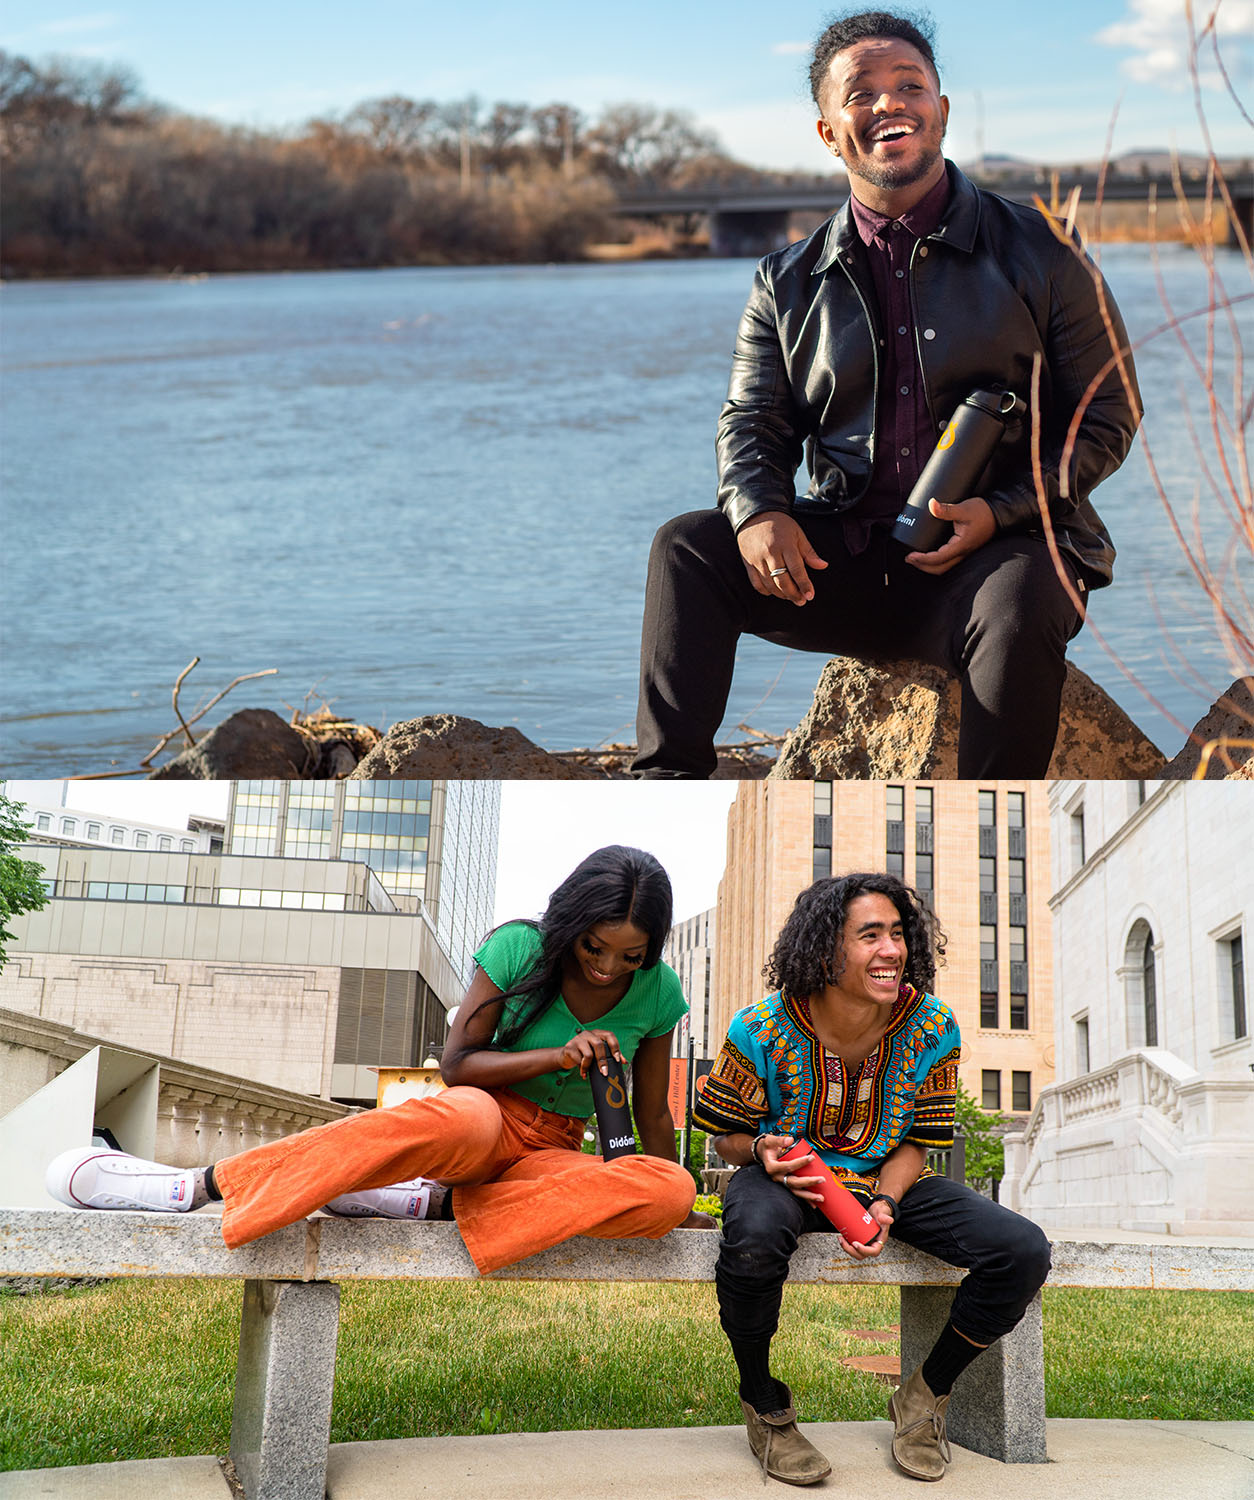 Two pictures are next to each other. In the top picture, a man holding a black water bottle sits on a rock. In the bottom picture, a man wearing a colorful shirt sits next to a woman wearing a green shirt and orange pants. Both hold water bottles.